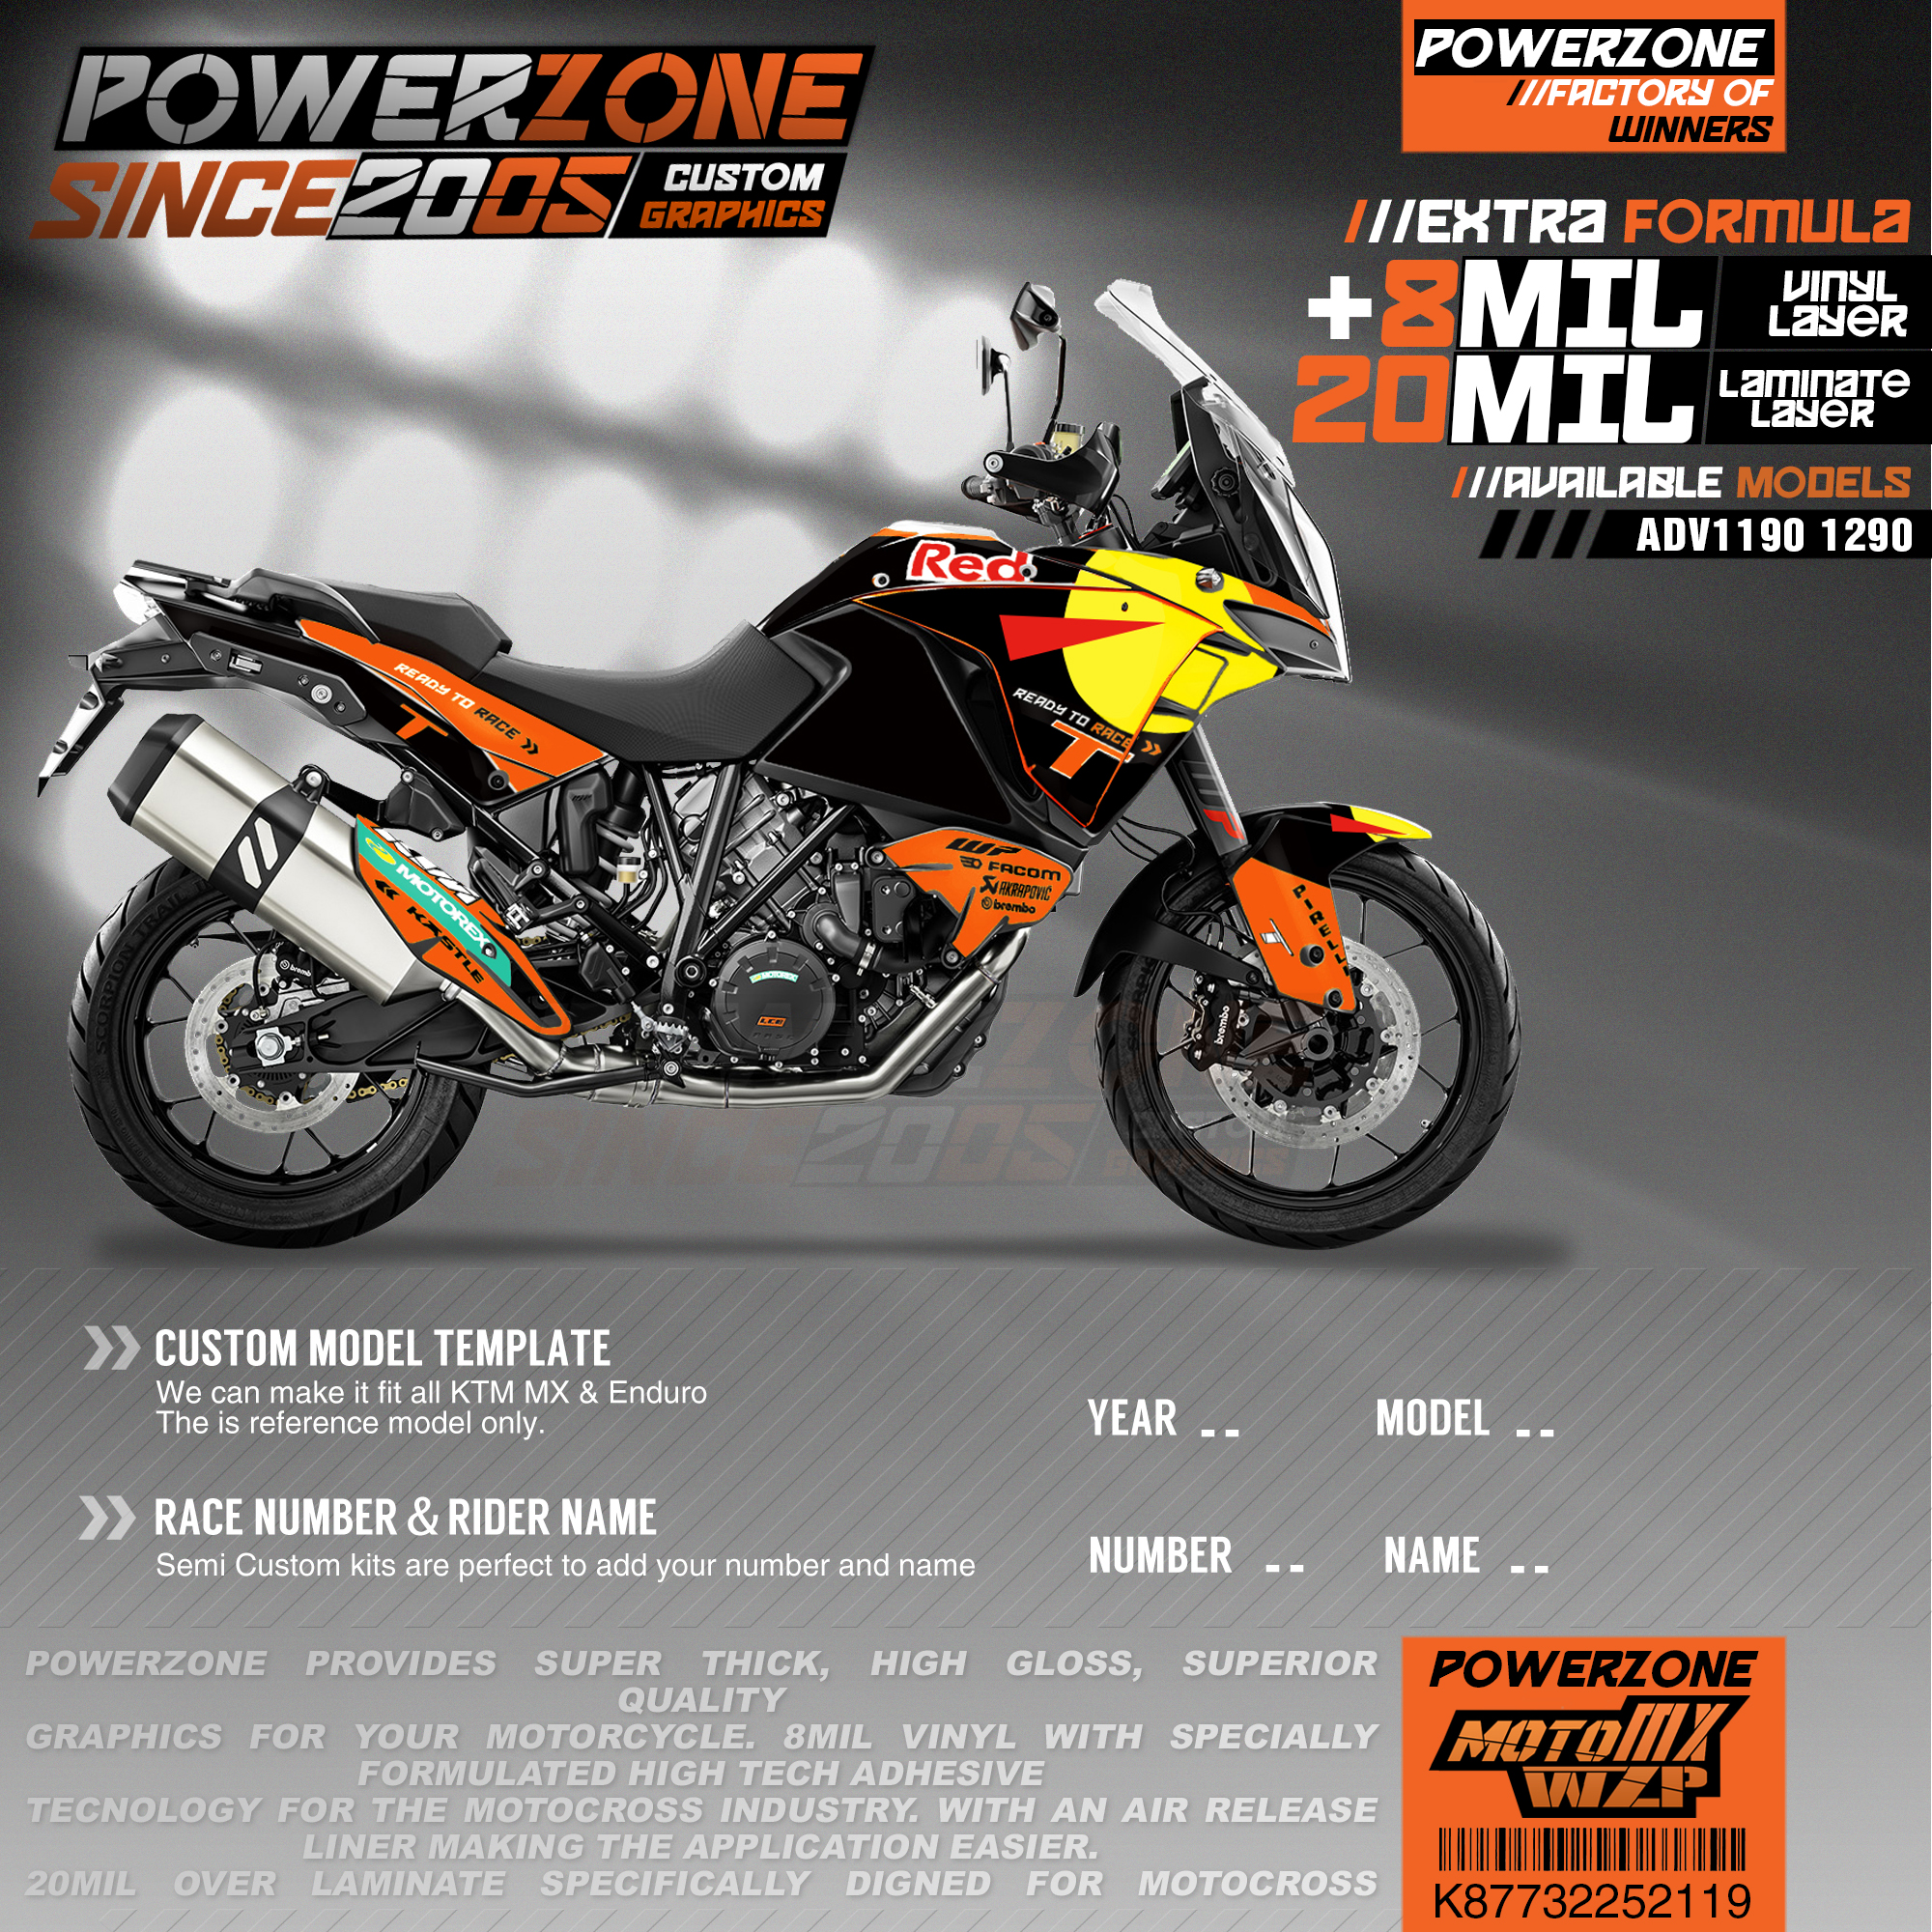 PowerZone Custom Team Graphics Backgrounds Decals 3M Stickers Kit For KTM ADV 1050 1090 1190 1290 119